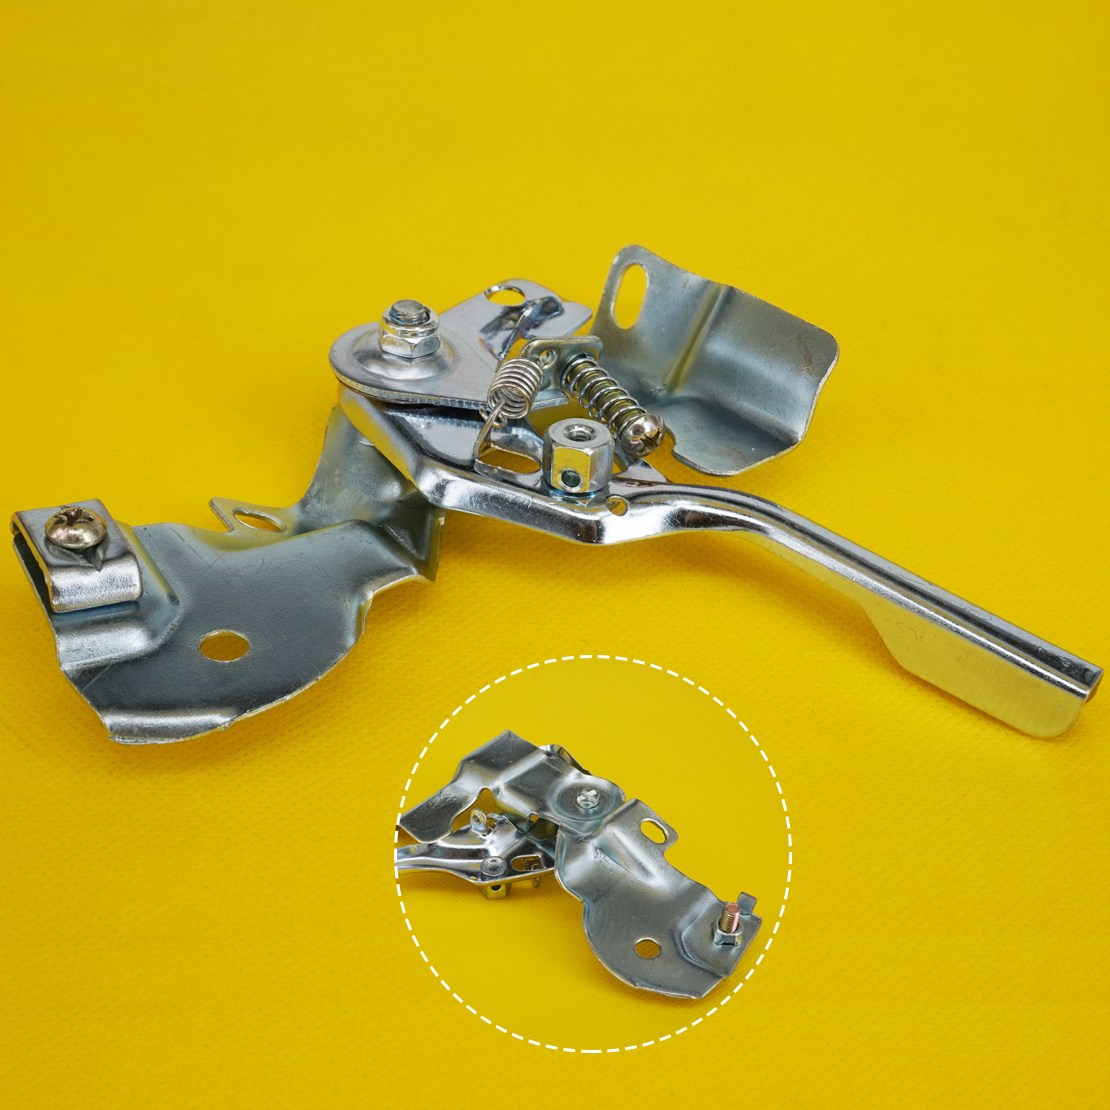 LETAOSK Throttle Control Lever Arm Assembly Replacement Fit For Honda GX160 GX200 16500-ZH8-823